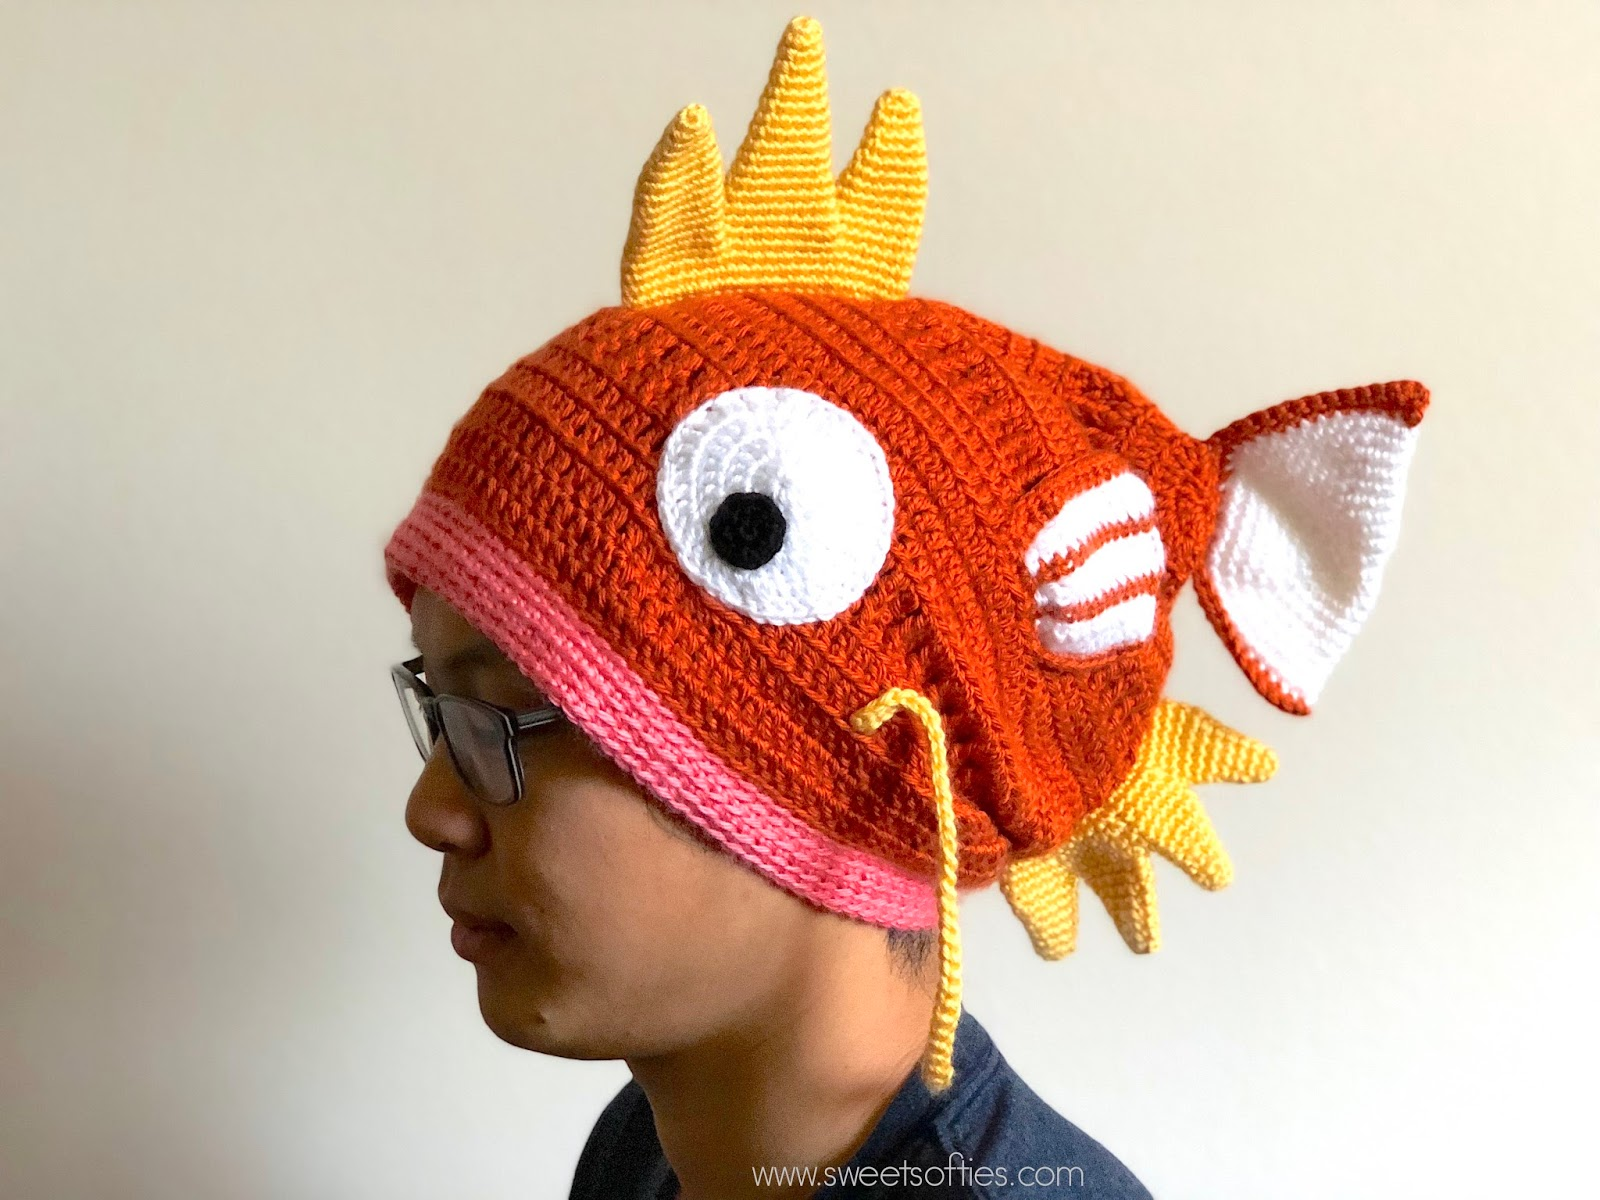 After seeing him sport the Magikarp hat so well 69f100a45c4